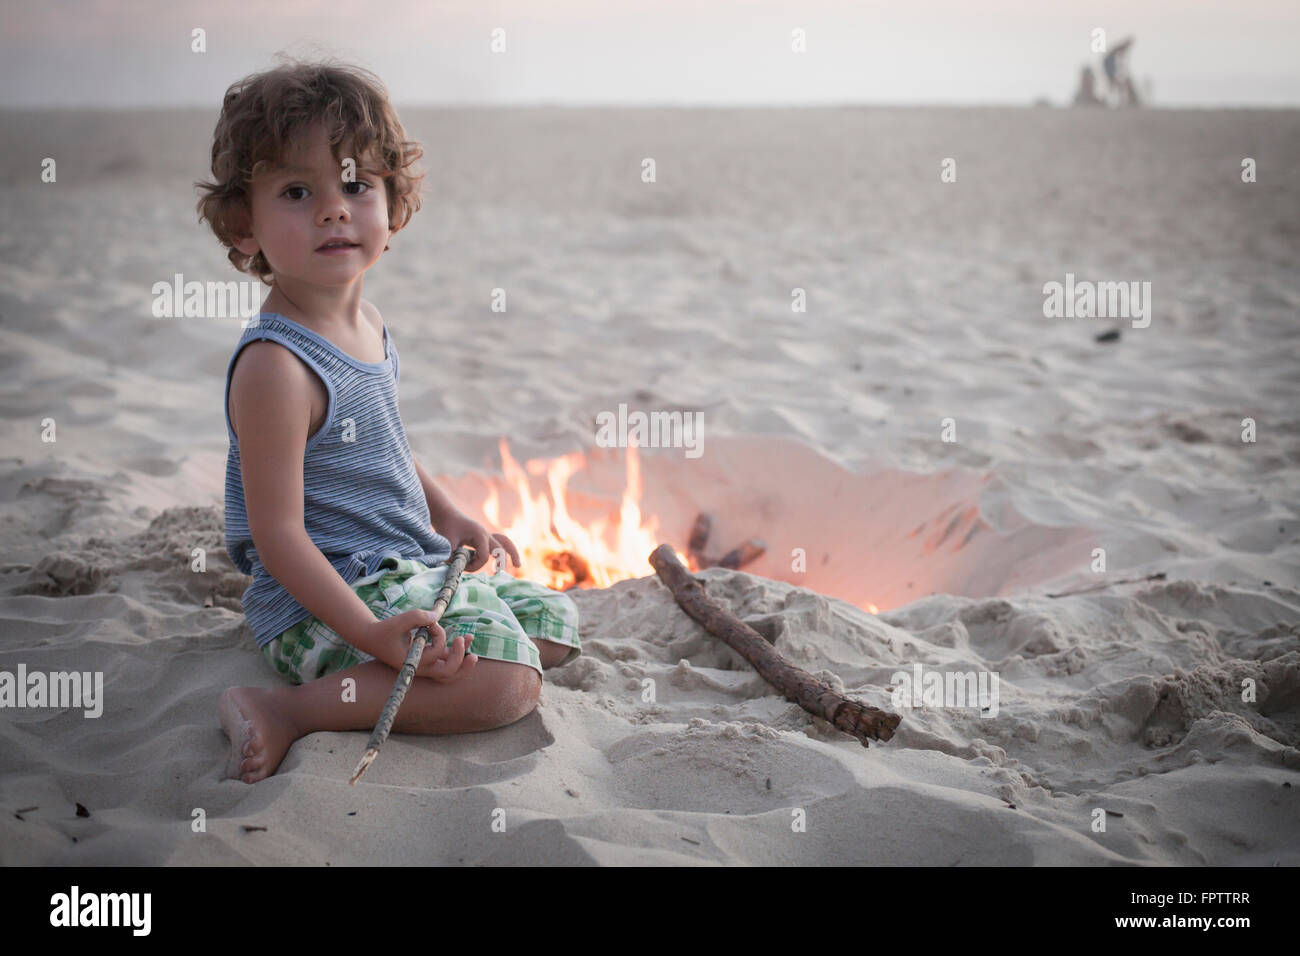 Boy sitting next to camp fire on beach and family in the background, Lit-et-Mixe, Aquitaine, France - Stock Image